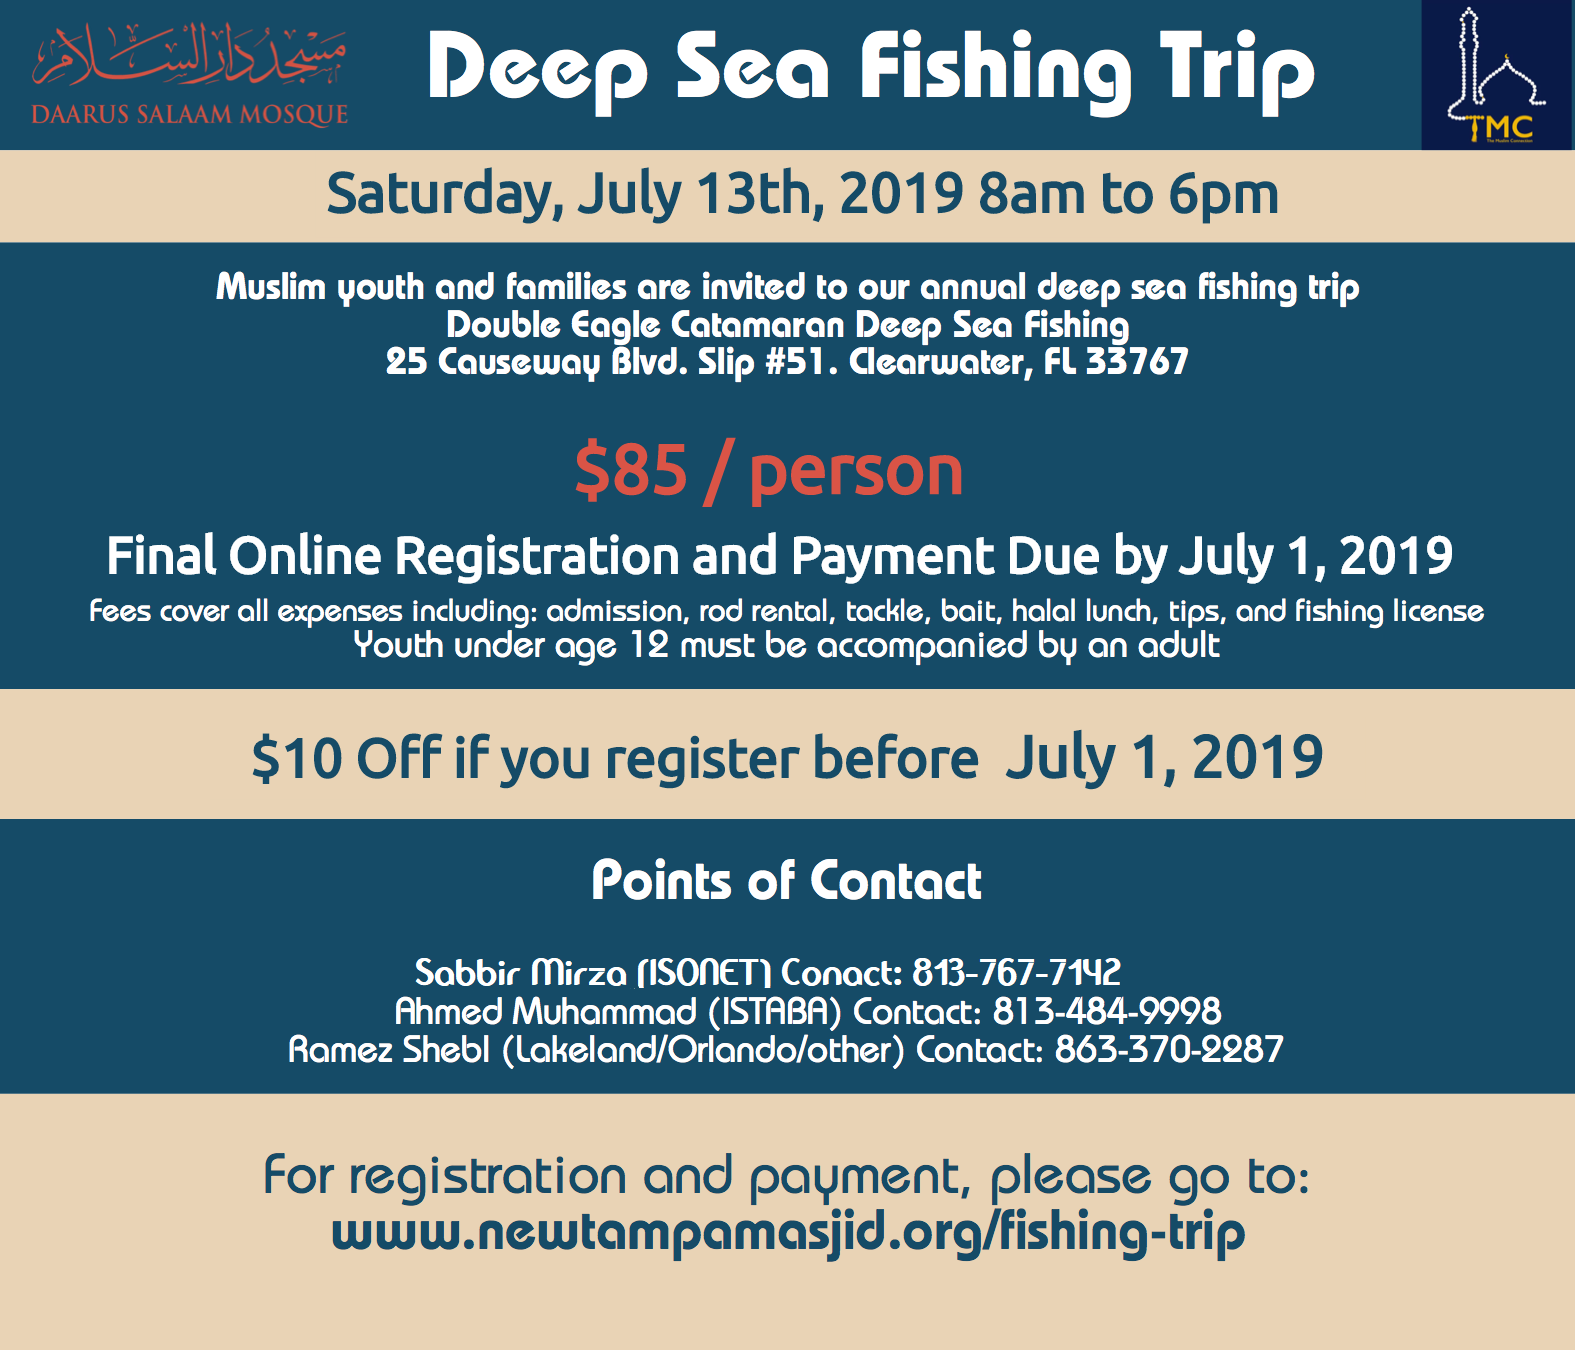 Updated - Deep_Sea_Fishing_Trip_07-13-19.png